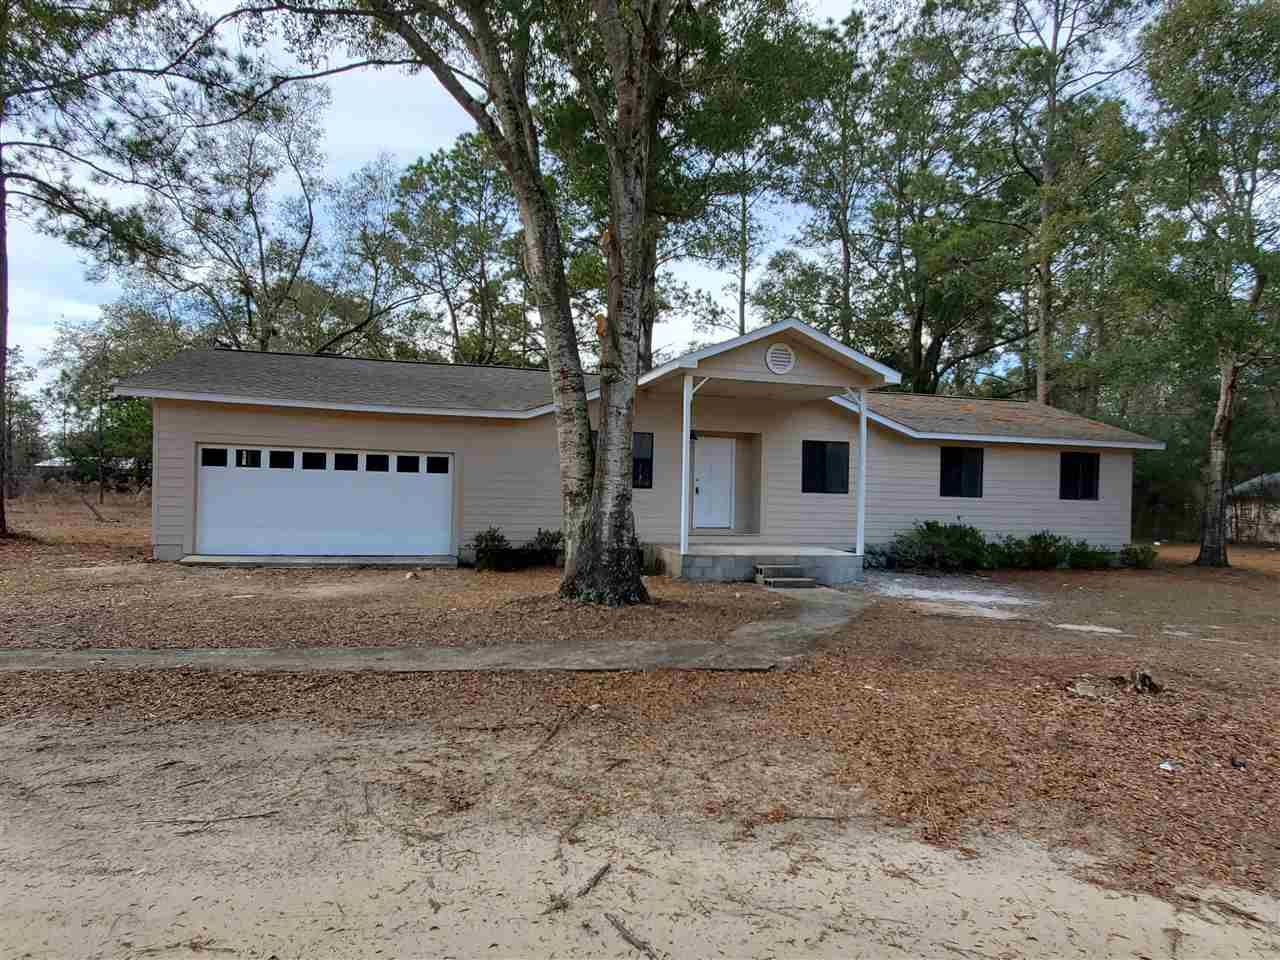 456 Central Road, Midway, FL 32343 - MLS#: 327457